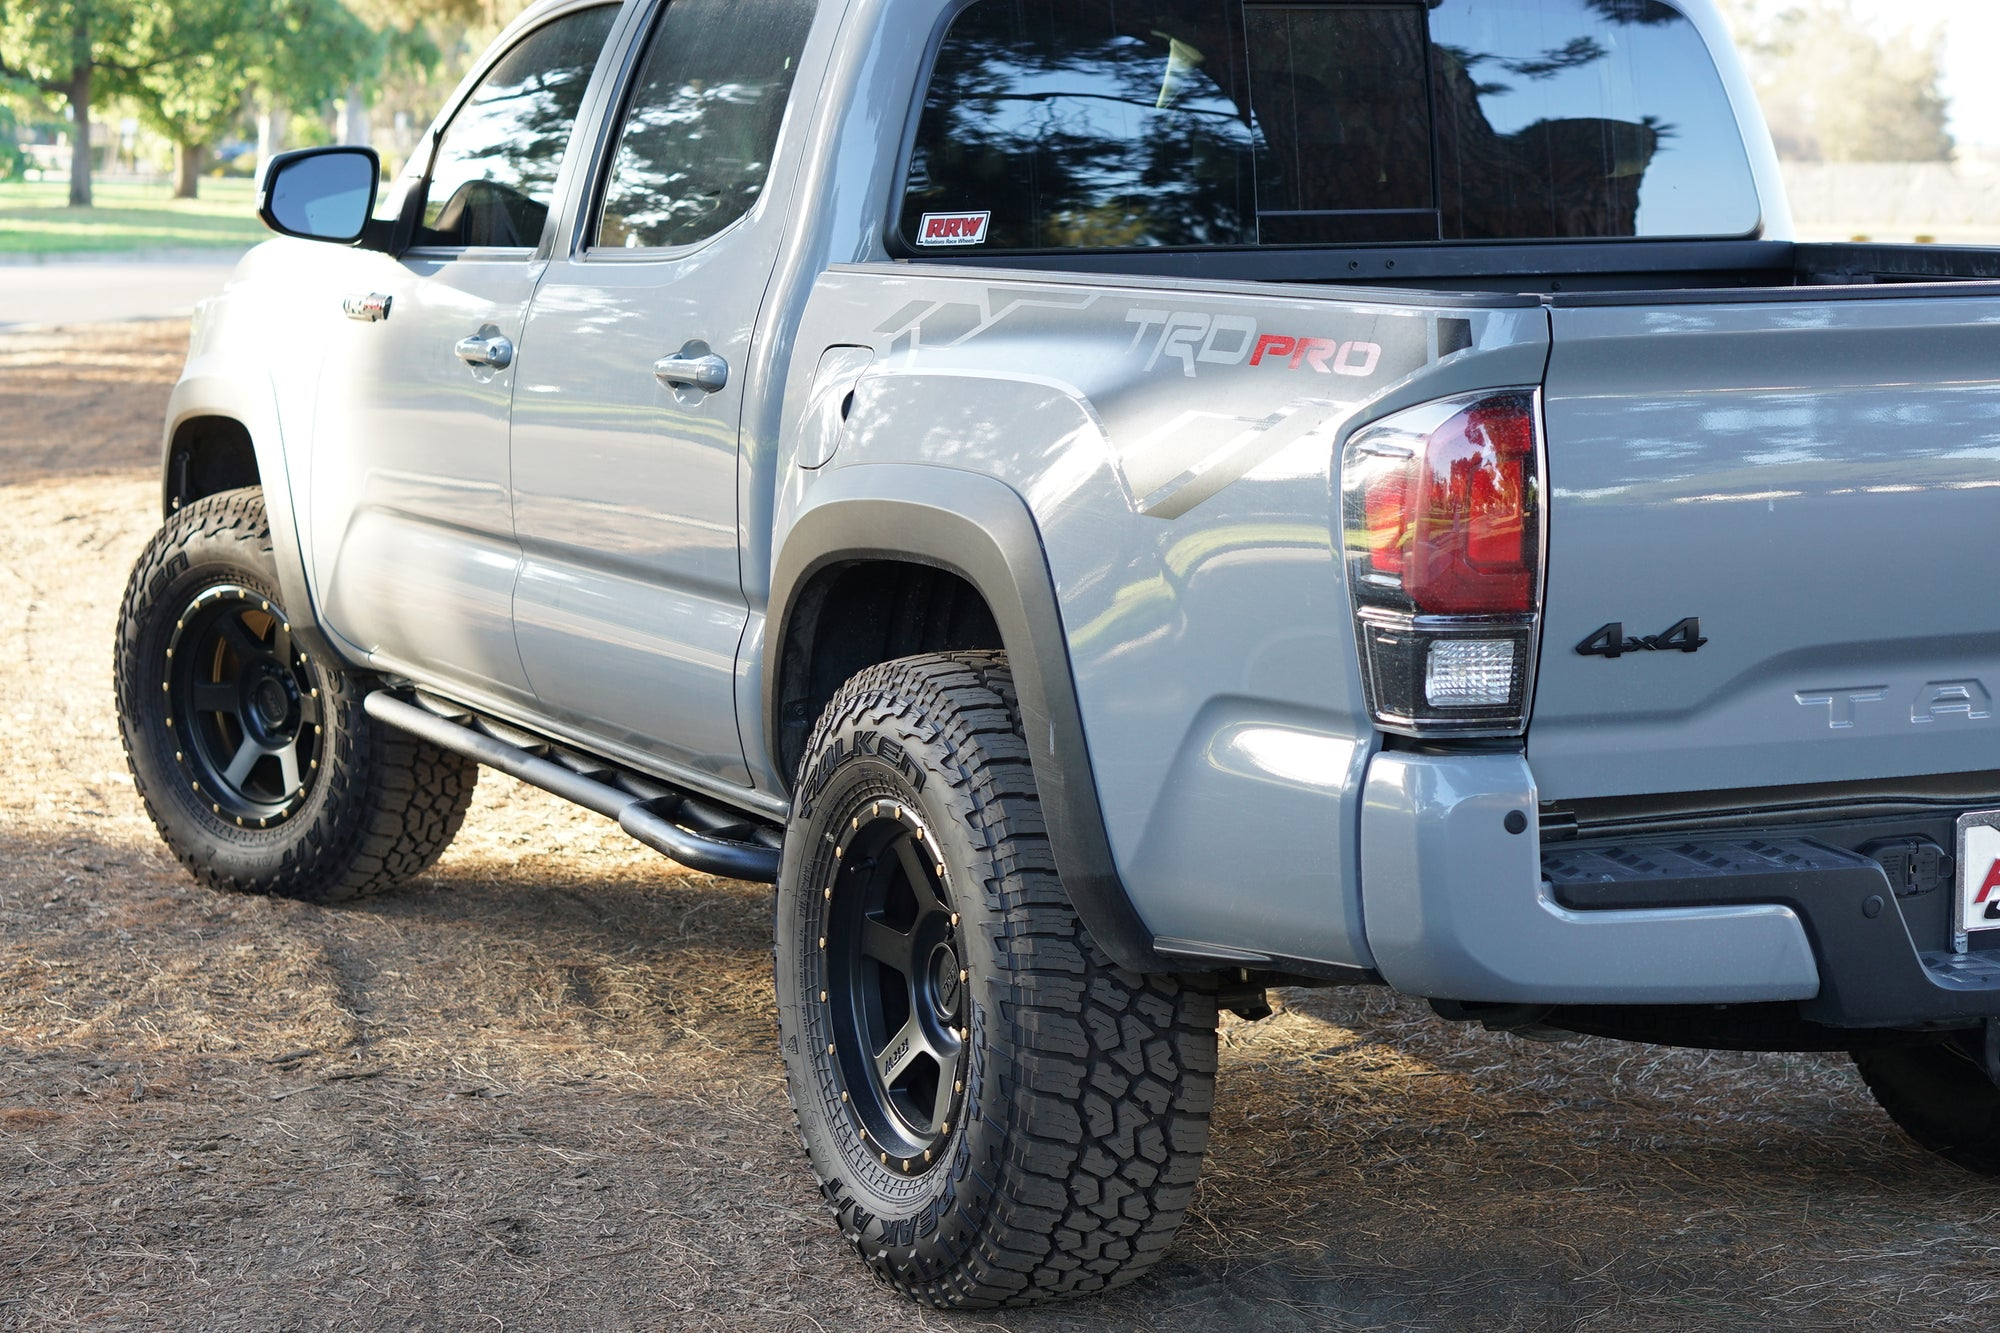 TACOMA TRD PRO: POWERFUL AND PROTECTED